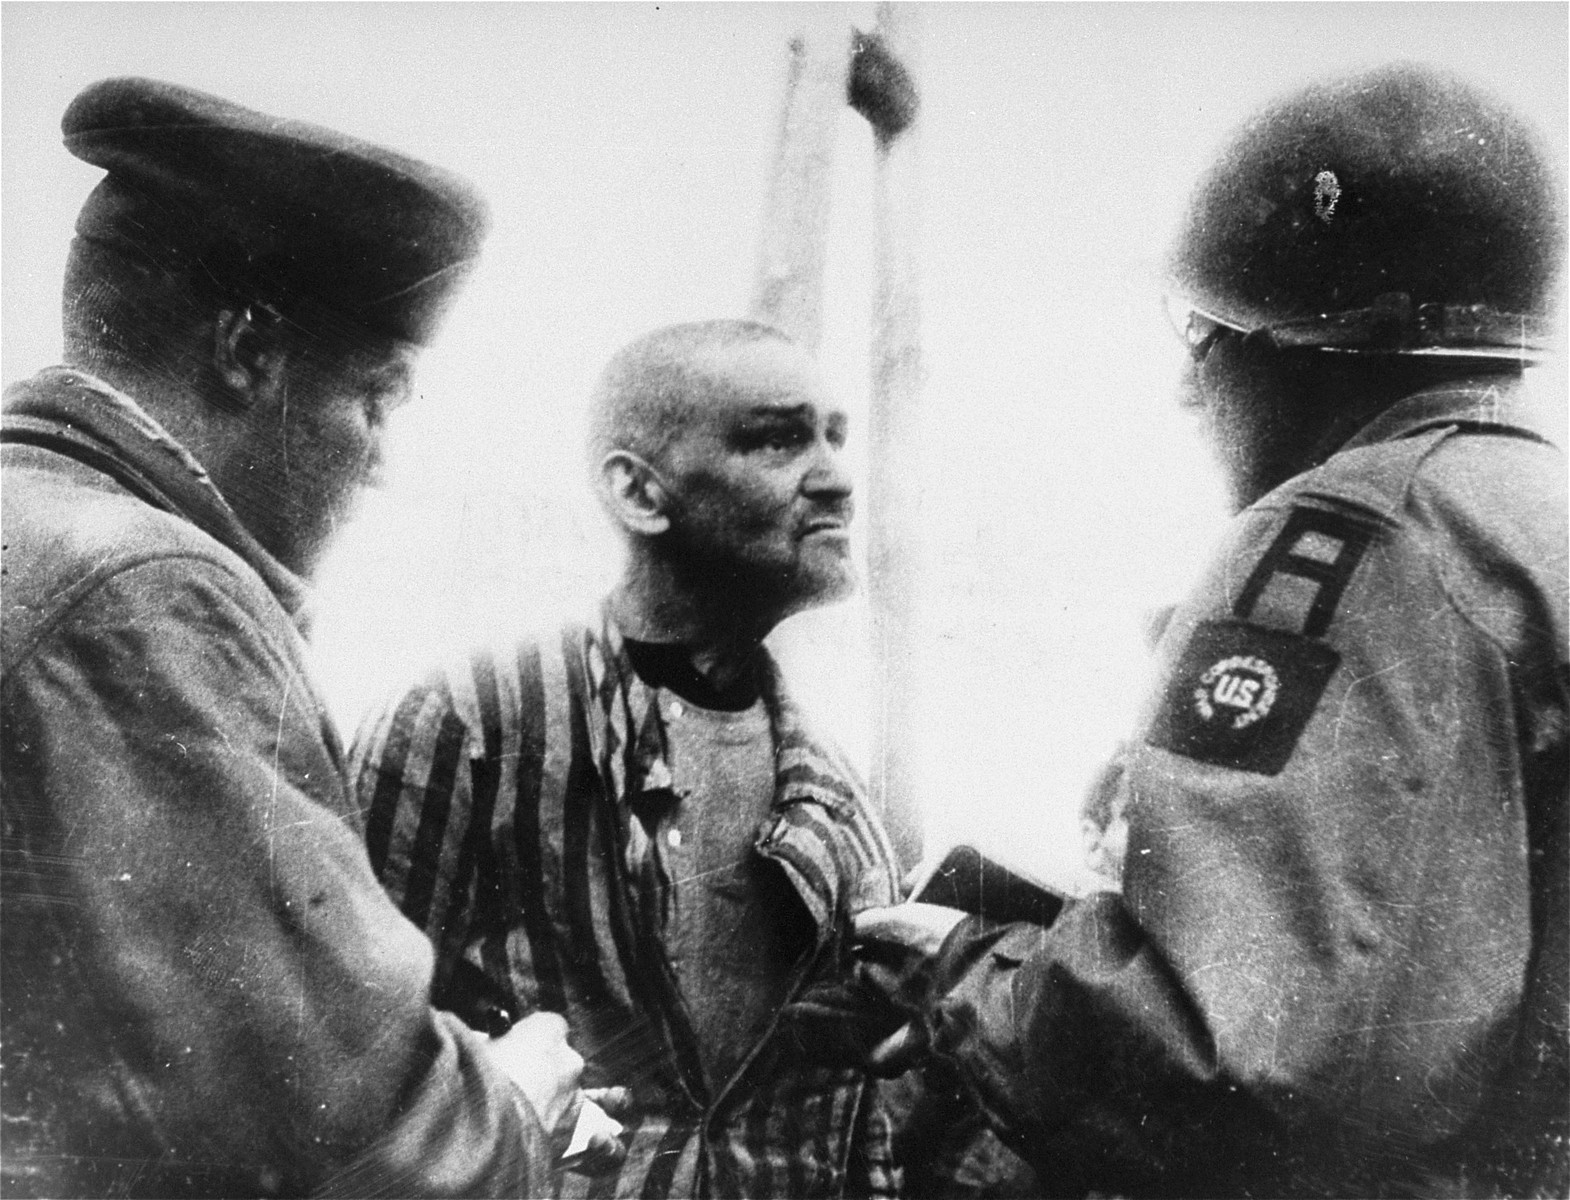 Dmitiri Sobolew, a Russian orthodox priest from Paris, eagerly gives information to two U.S. war correspondents, Chris Cunningham of United Press and W.C. Heinz of the New York Sun.    Sobolew was arrested and many times beaten for aiding Jews.